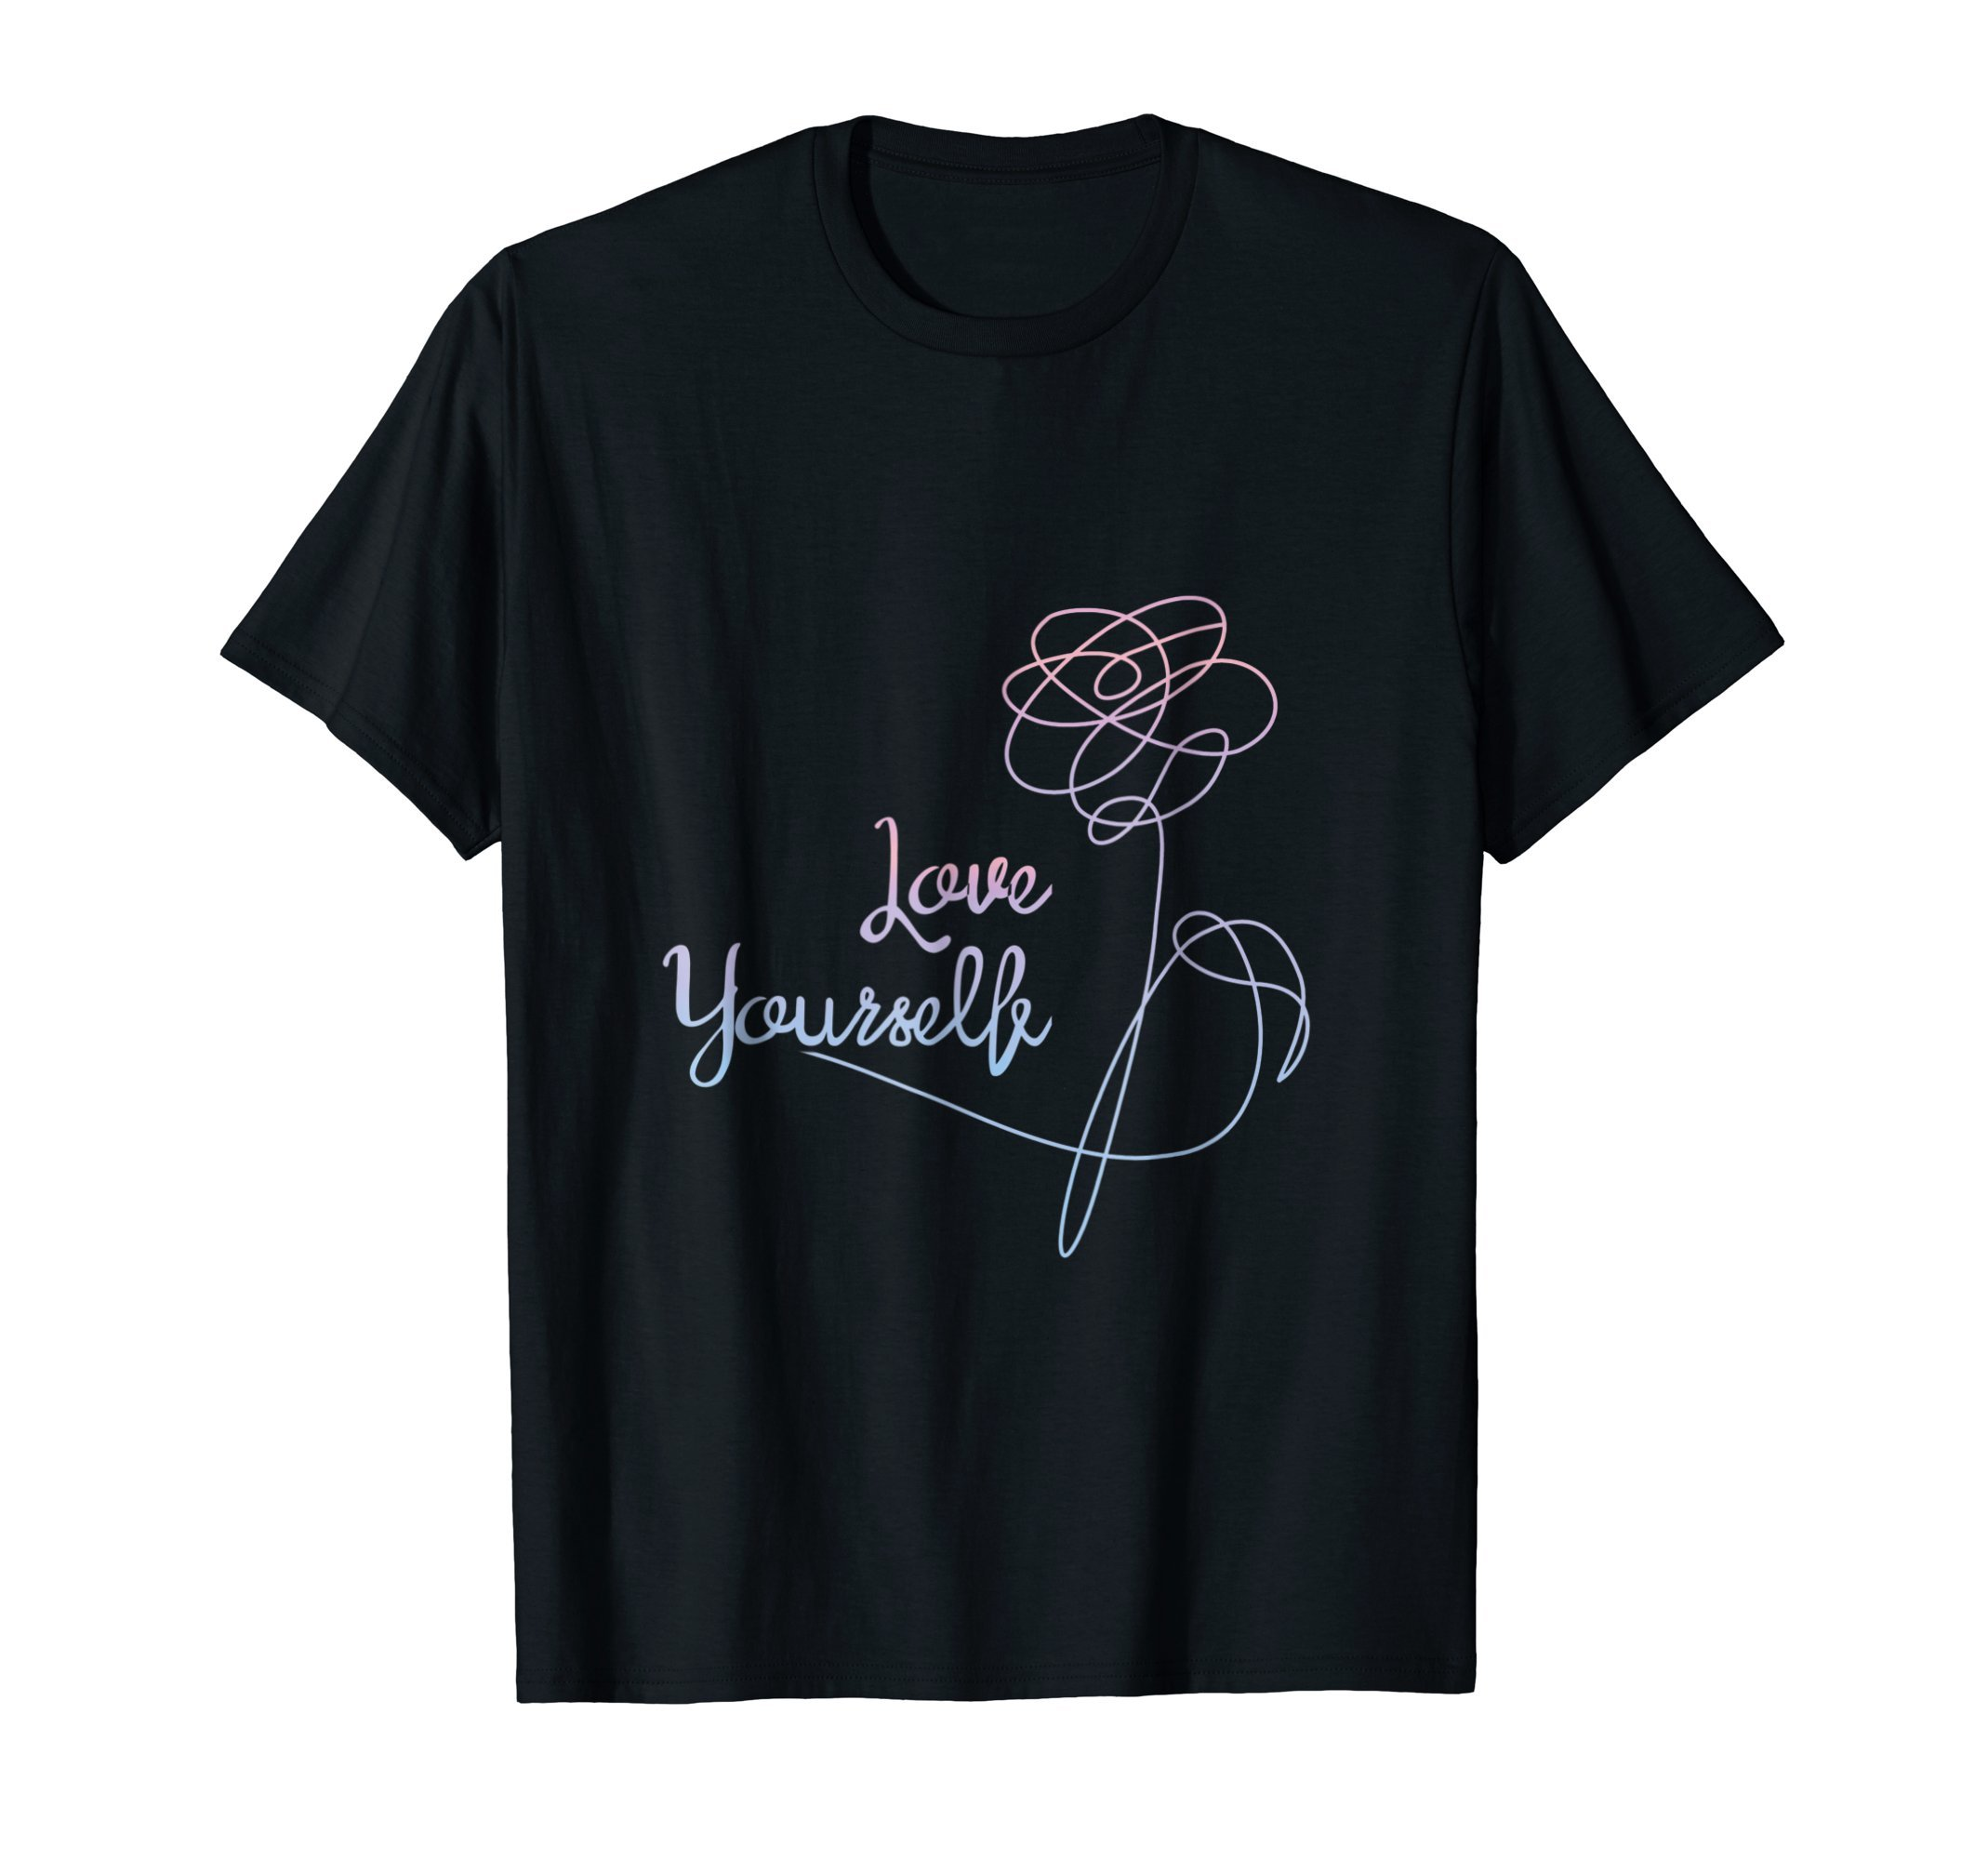 BTS Love Yourself T Shirt Women Cute Gift by BTS Love Yourself Gift (Image #1)